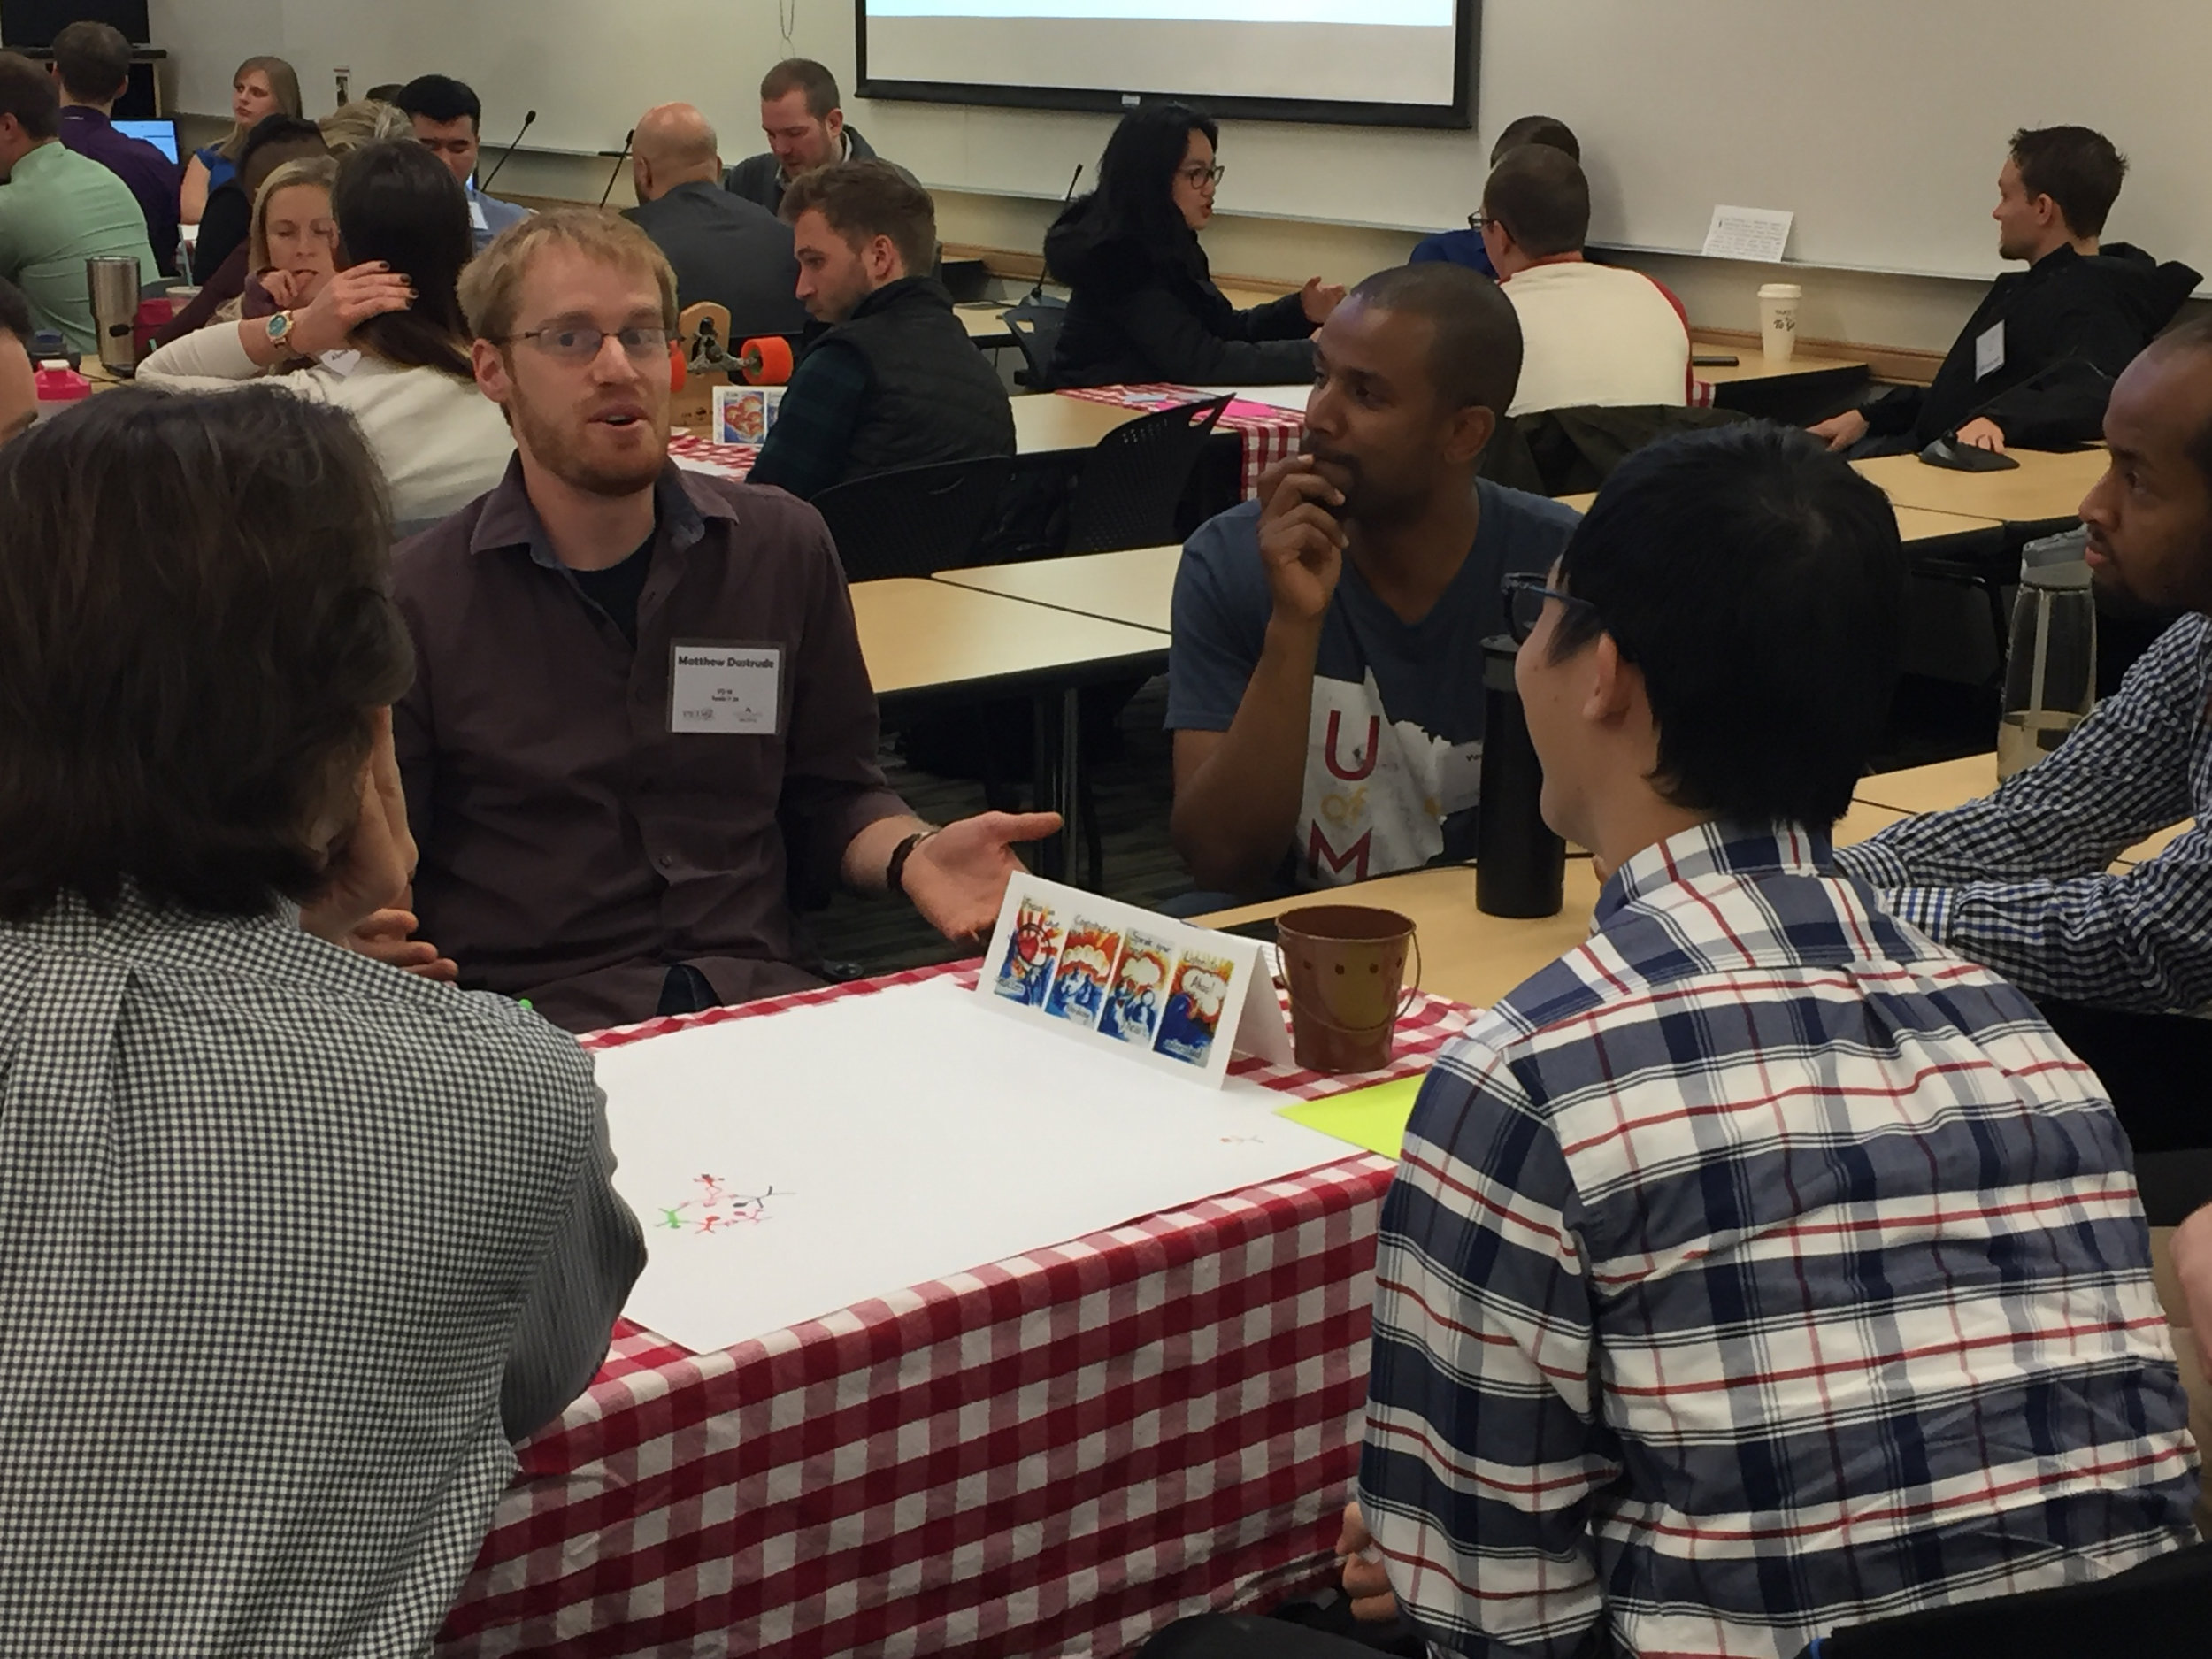 U of M Pharmacy Table Discussion 4.jpg